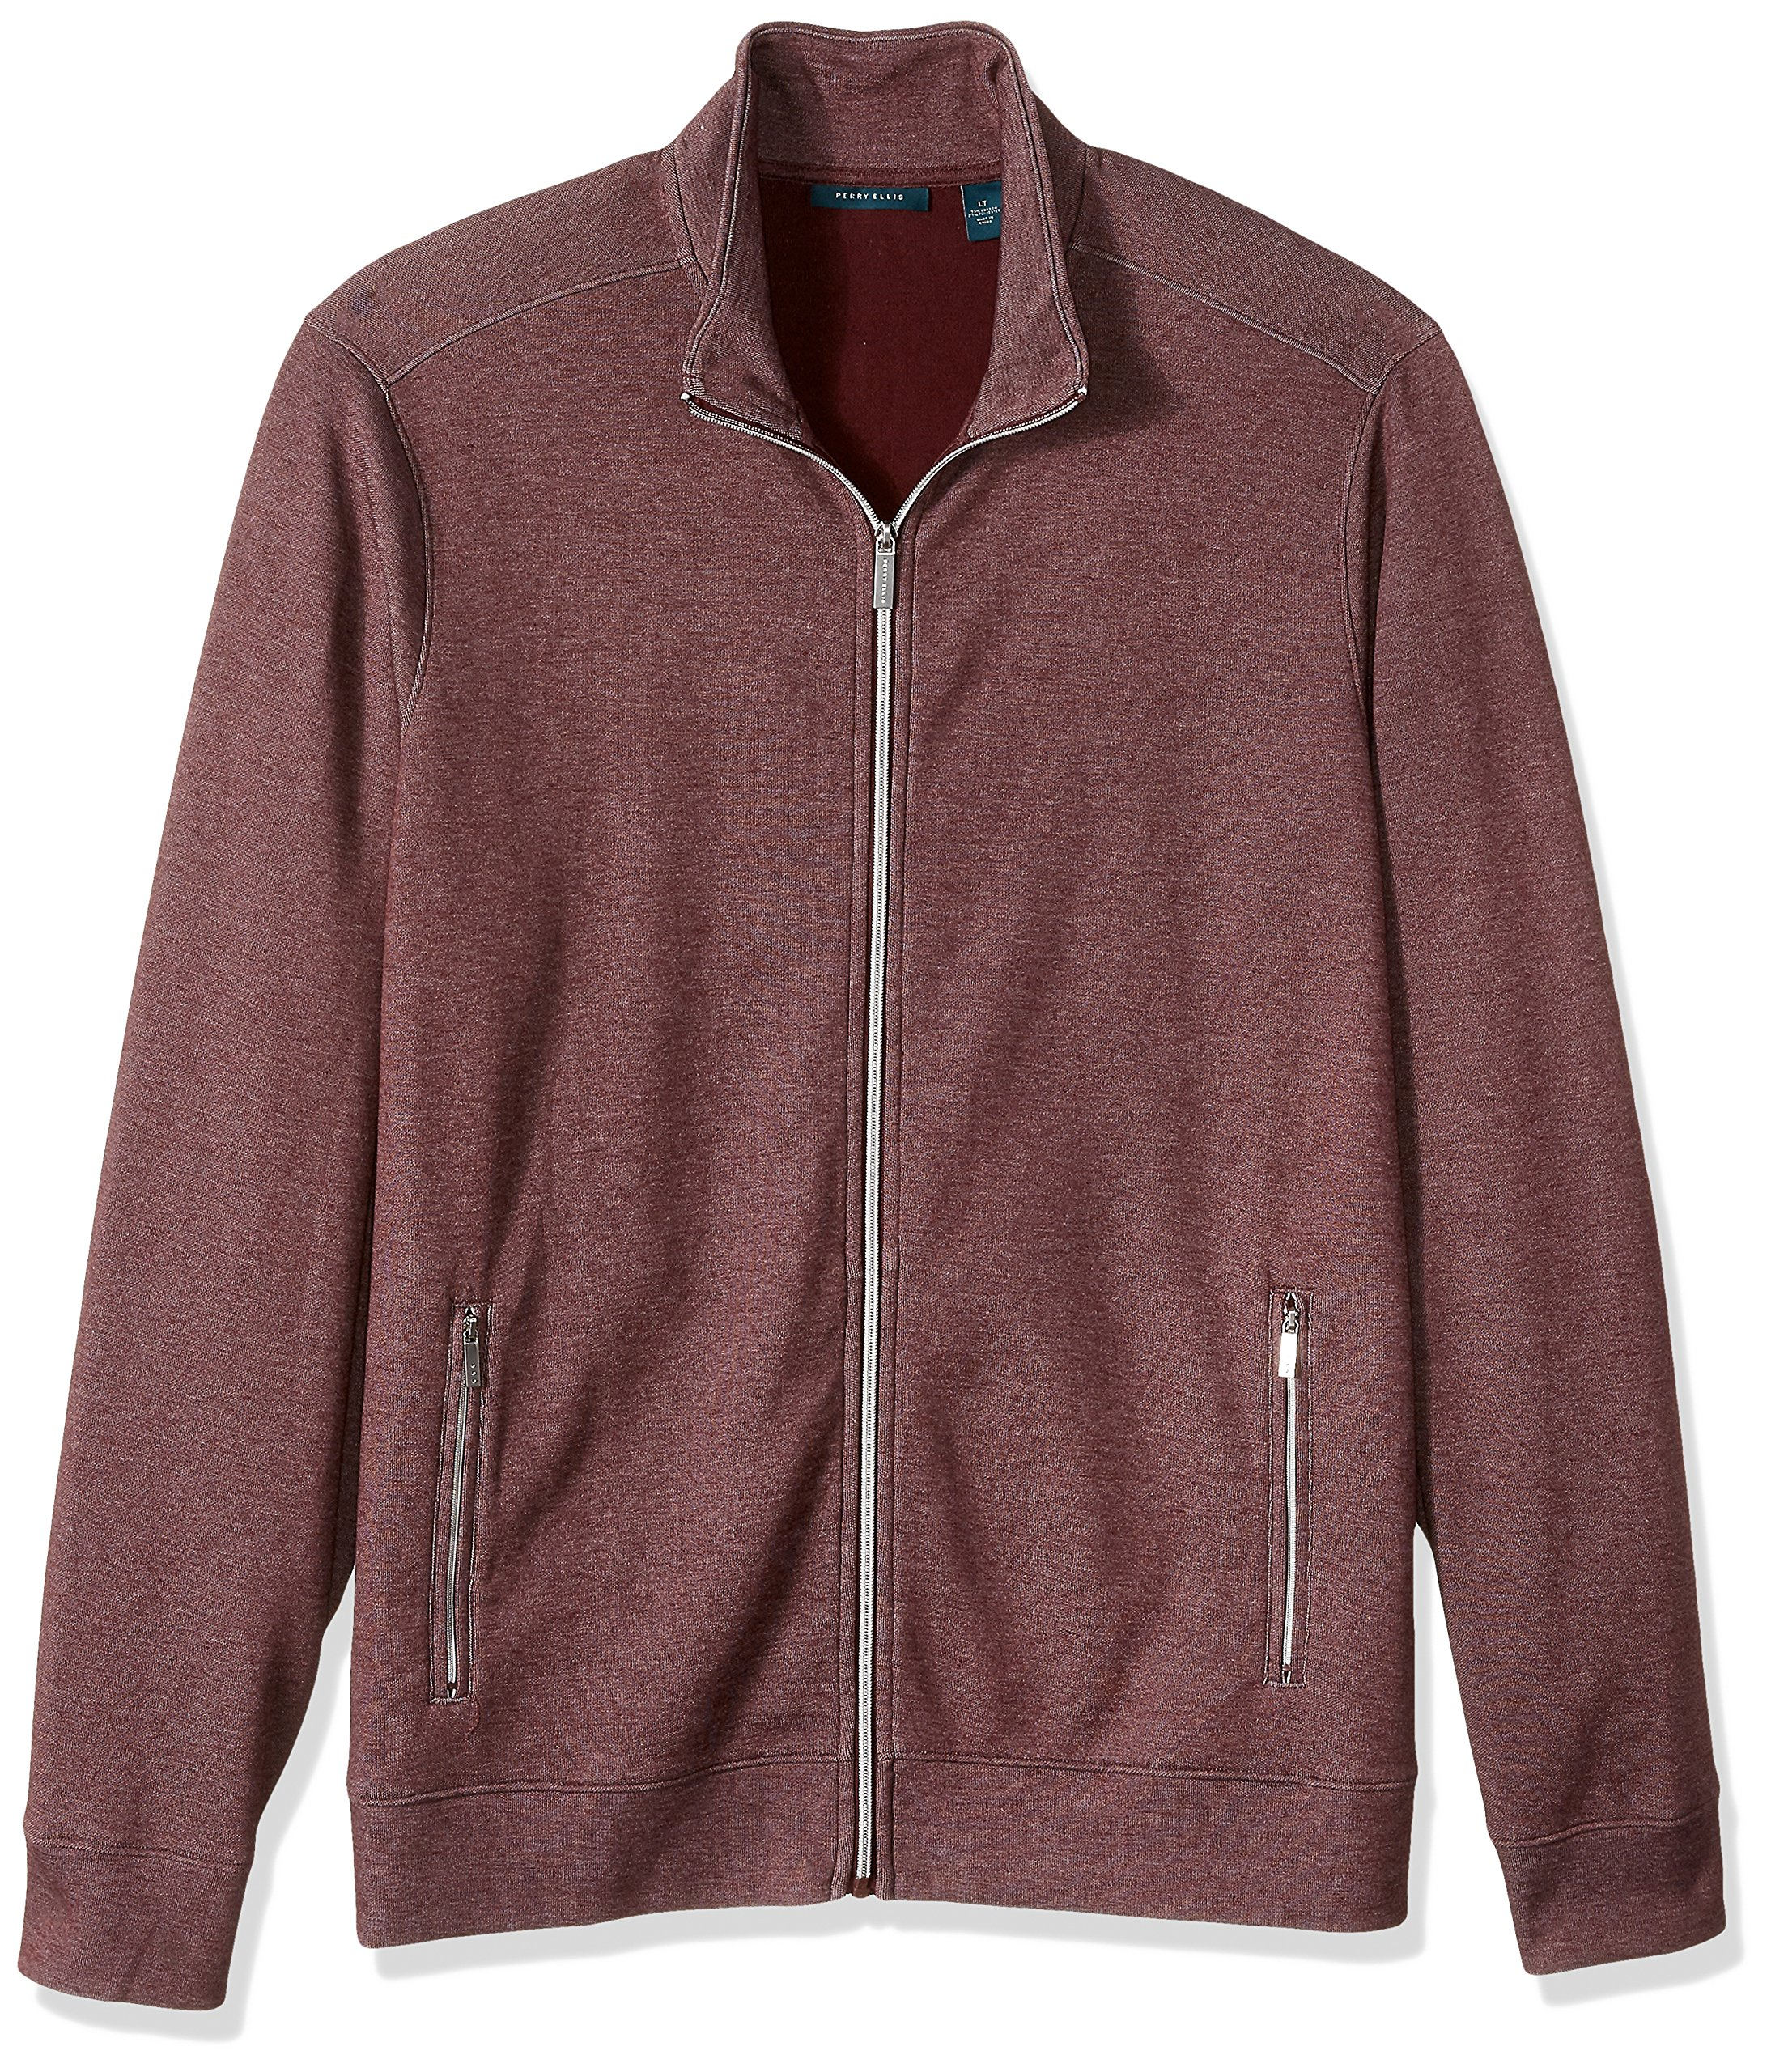 Perry Ellis Men's Solid Heathered Full Zip Knit Jacket, Port, Extra Large